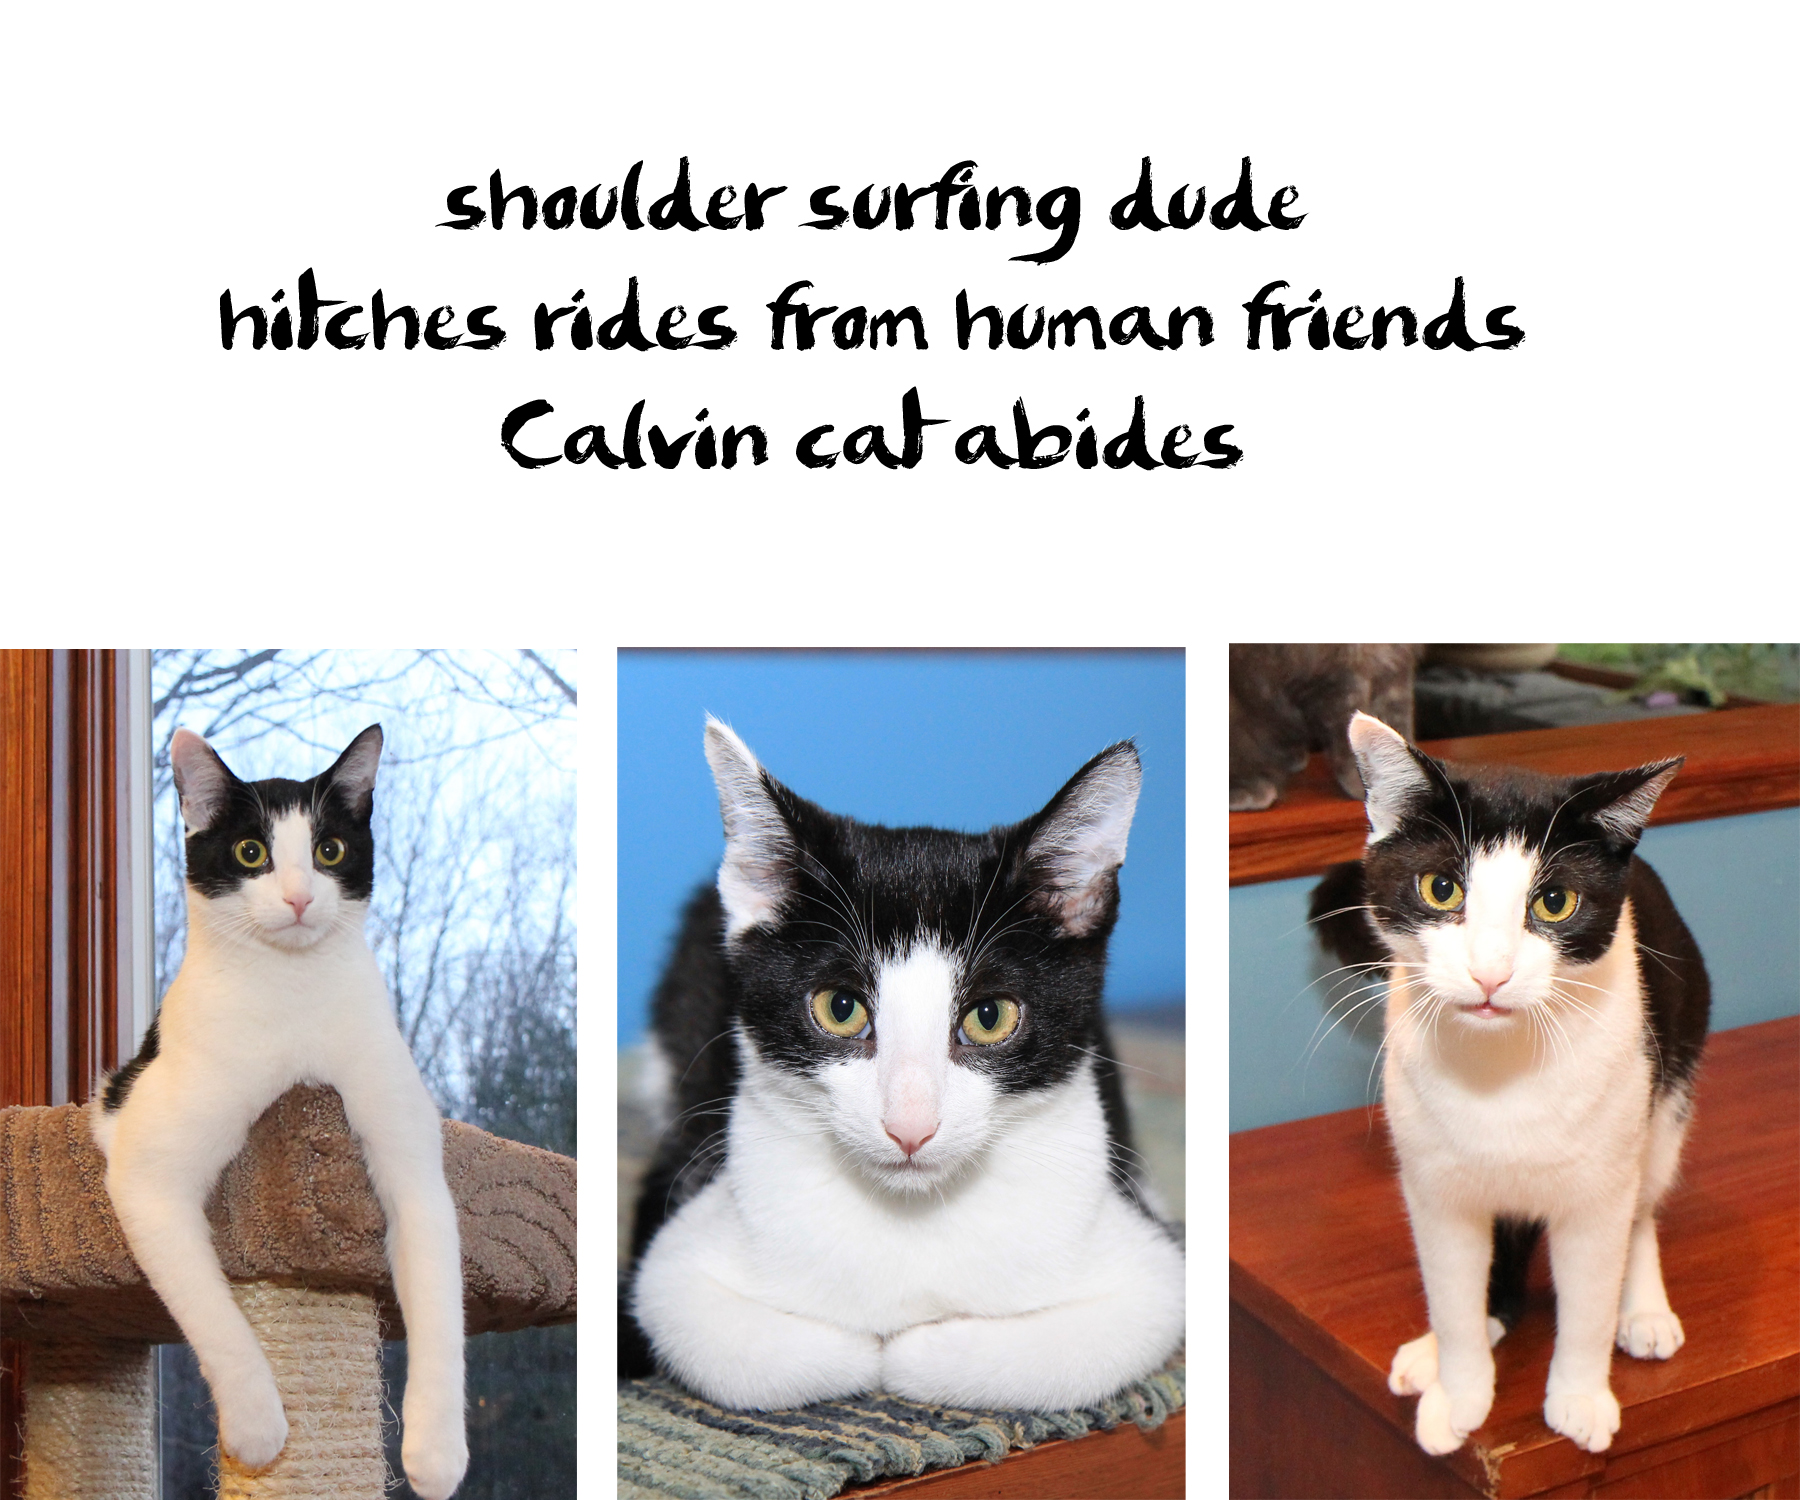 Calvin cat haiku : shoulder surfing dude / hitches rides from human friends / Calvin cat abides